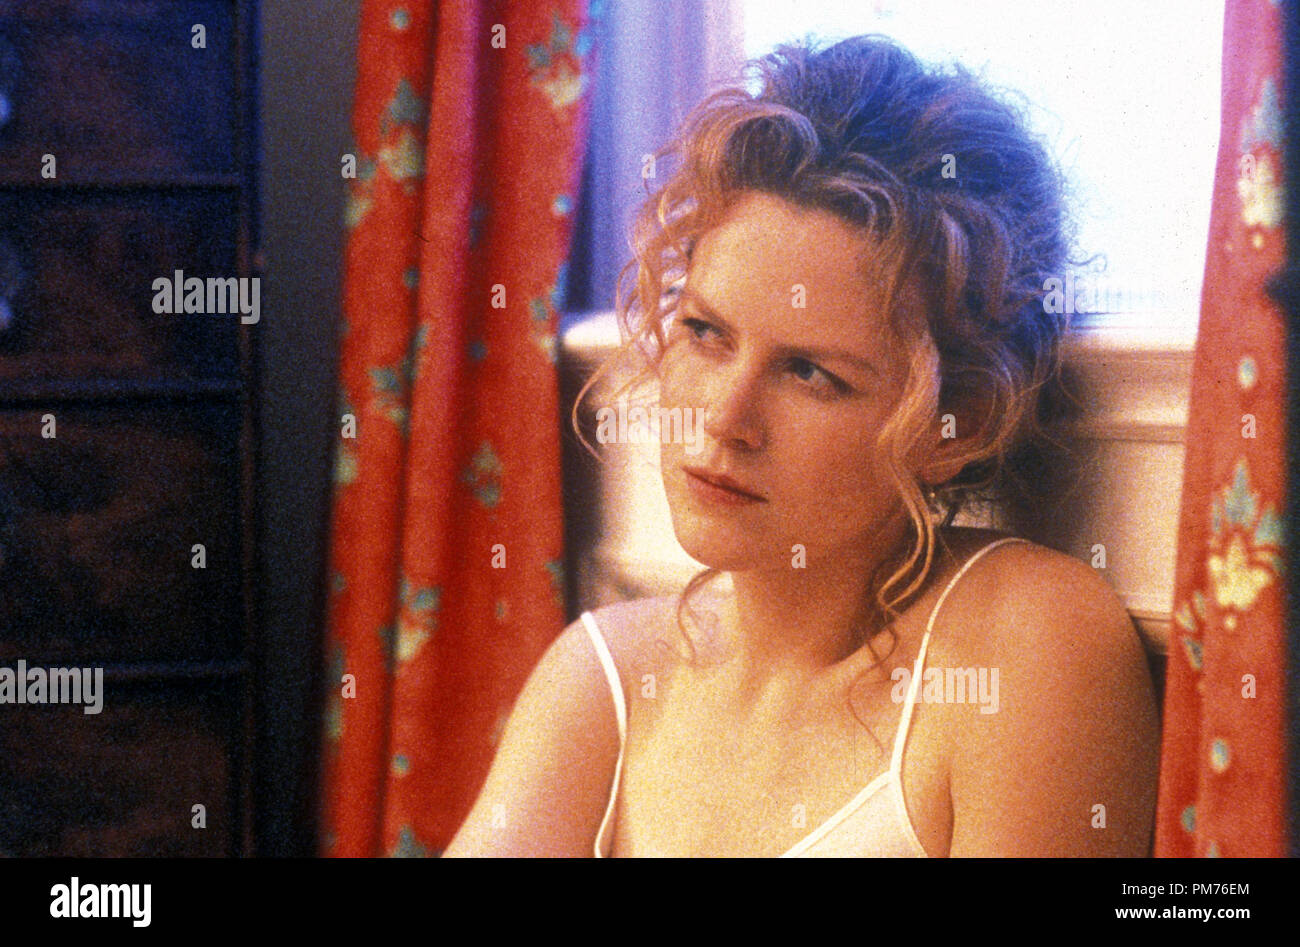 Film Still / Publicity Still from 'Eyes Wide Shut' Nicole Kidman © 1999 Warner Brothers   File Reference # 30973303THA  For Editorial Use Only -  All Rights Reserved - Stock Image